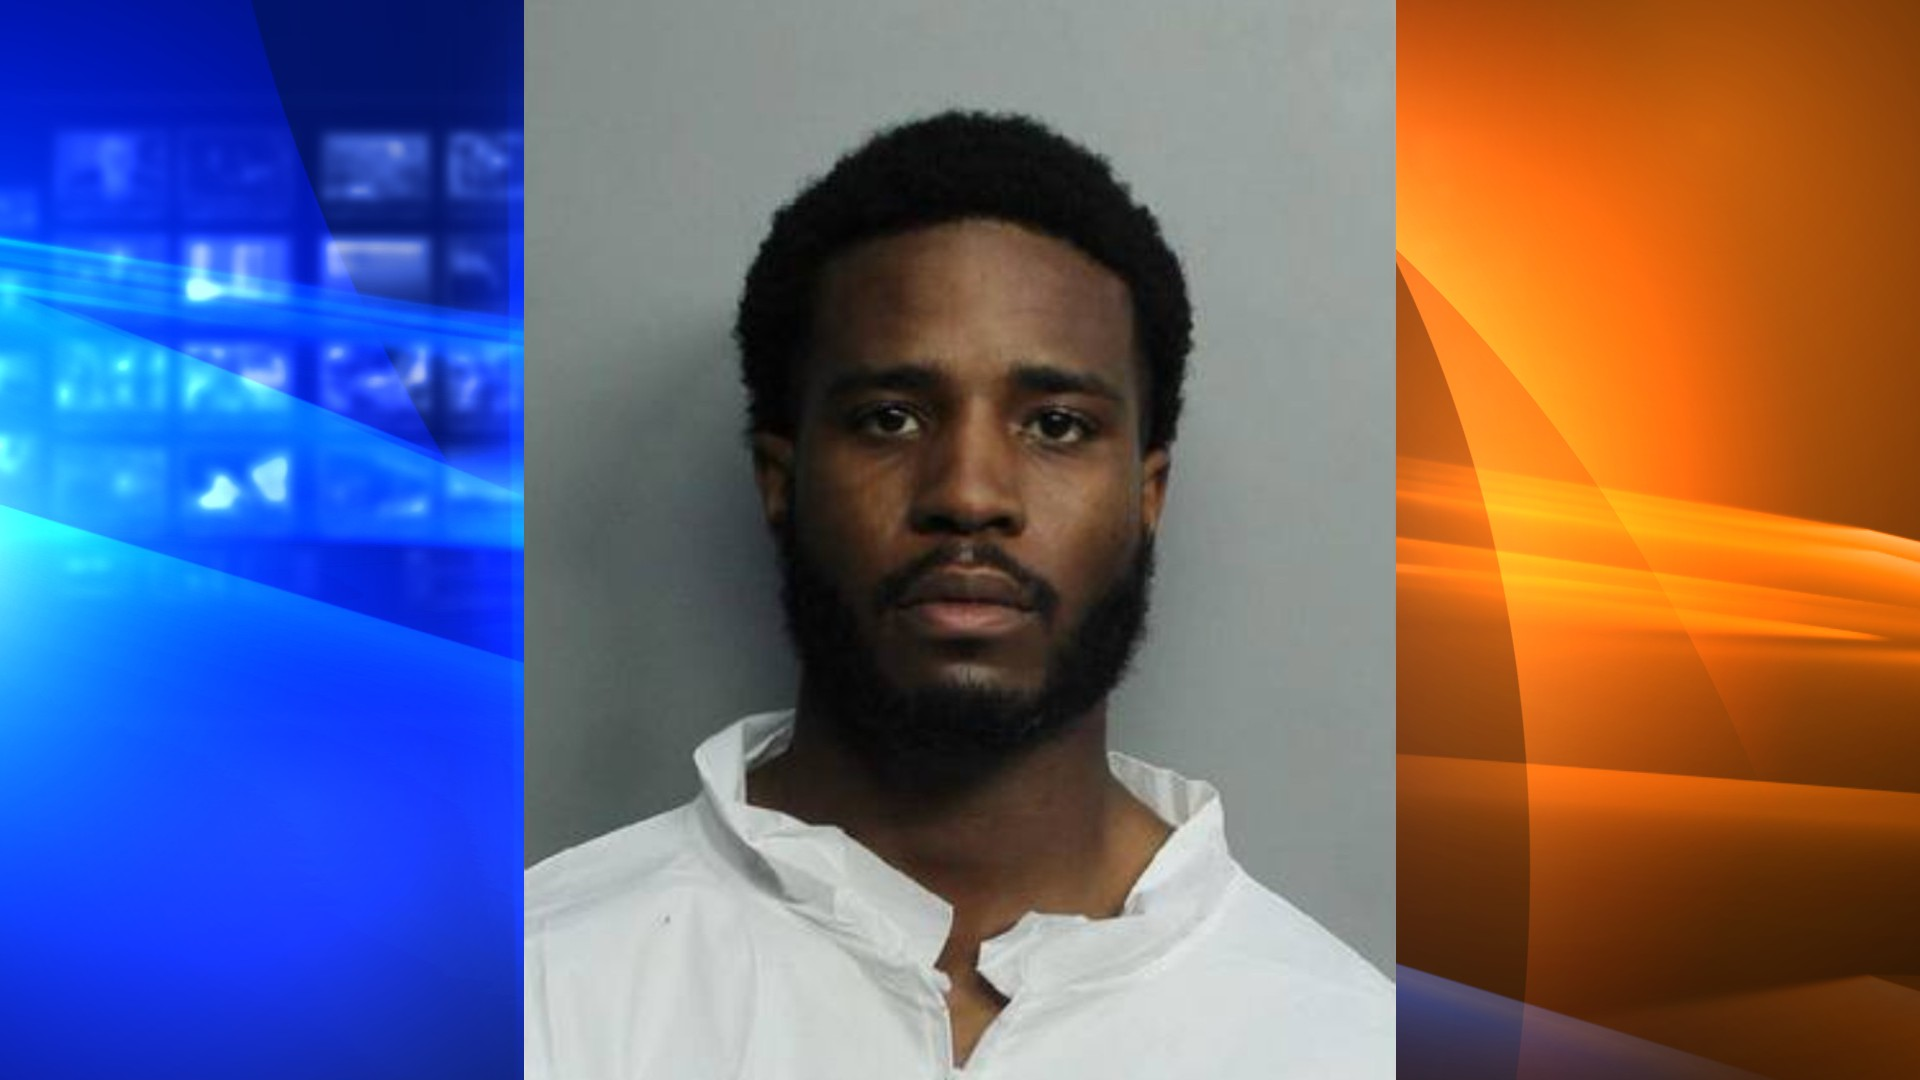 """This This image provided by the Miami-Dade Police Department shows Tamarius Blair Davis Jr., who fatally shot a tourist eating dinner with his family at a Miami Beach restaurant, police and a family member said. David Jr., 22, of Norcross, Georgia, told investigators he shot Dustin Wakefield, 21, on Tuesday night because he """"was high on mushrooms, which made him feel empowered,"""" according to his arrest report. (Miami-Dade Police Department via AP) provided by the Miami-Dade Police Department shows Tamarius Blair David Jr., who fatally shot a tourist eating dinner with his family at a Miami Beach restaurant, police and a family member said. David Jr., 22, of Norcross, Georgia, told investigators he shot Dustin Wakefield, 21, on Tuesday night because he """"was high on mushrooms, which made him feel empowered,"""" according to his arrest report. (Miami-Dade Police Department via AP)"""